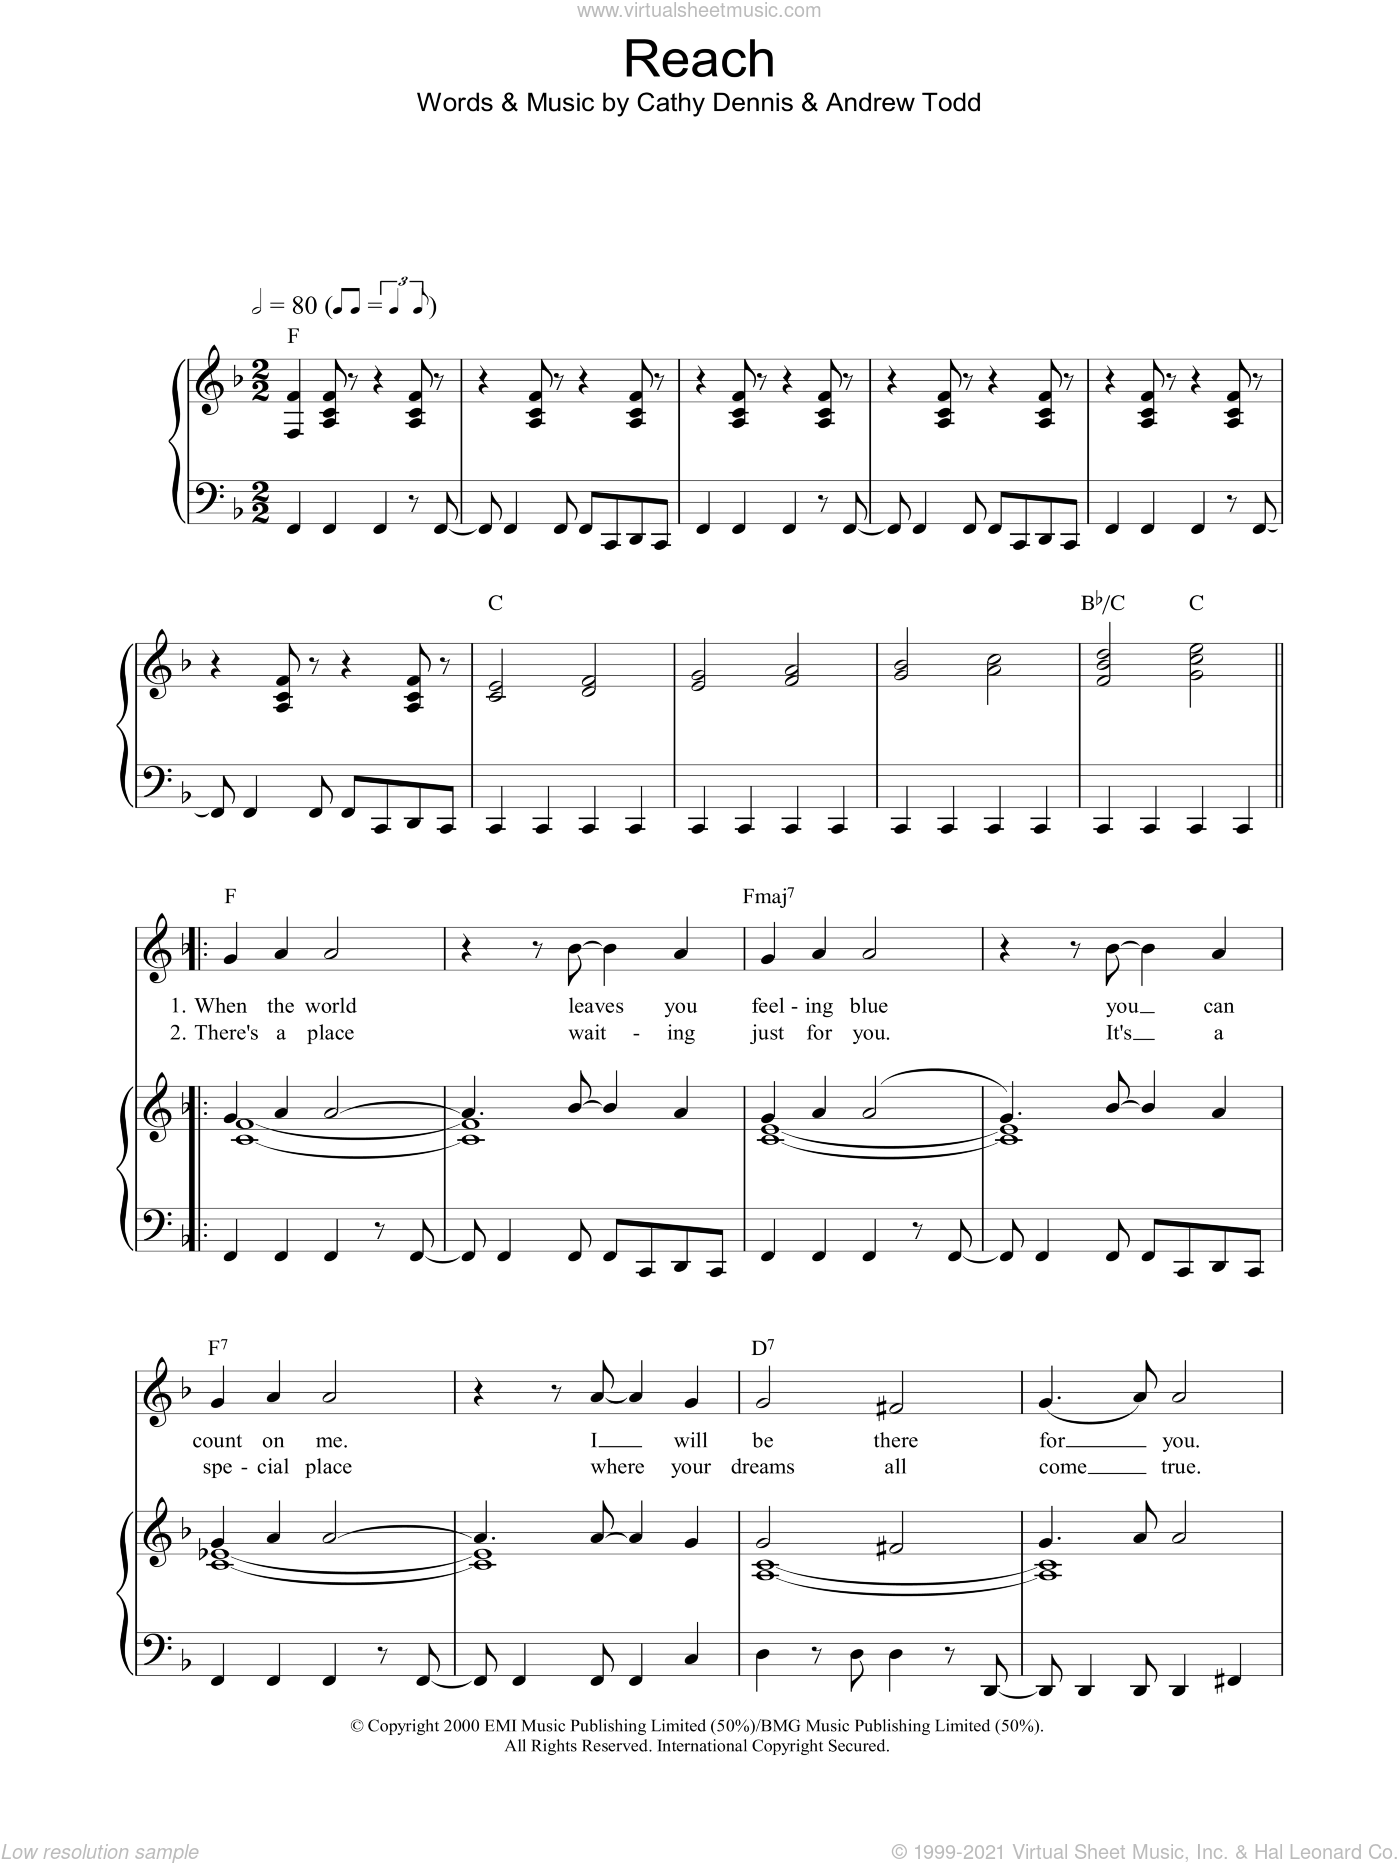 Reach sheet music for voice, piano or guitar by Cathy Dennis and S Club 7